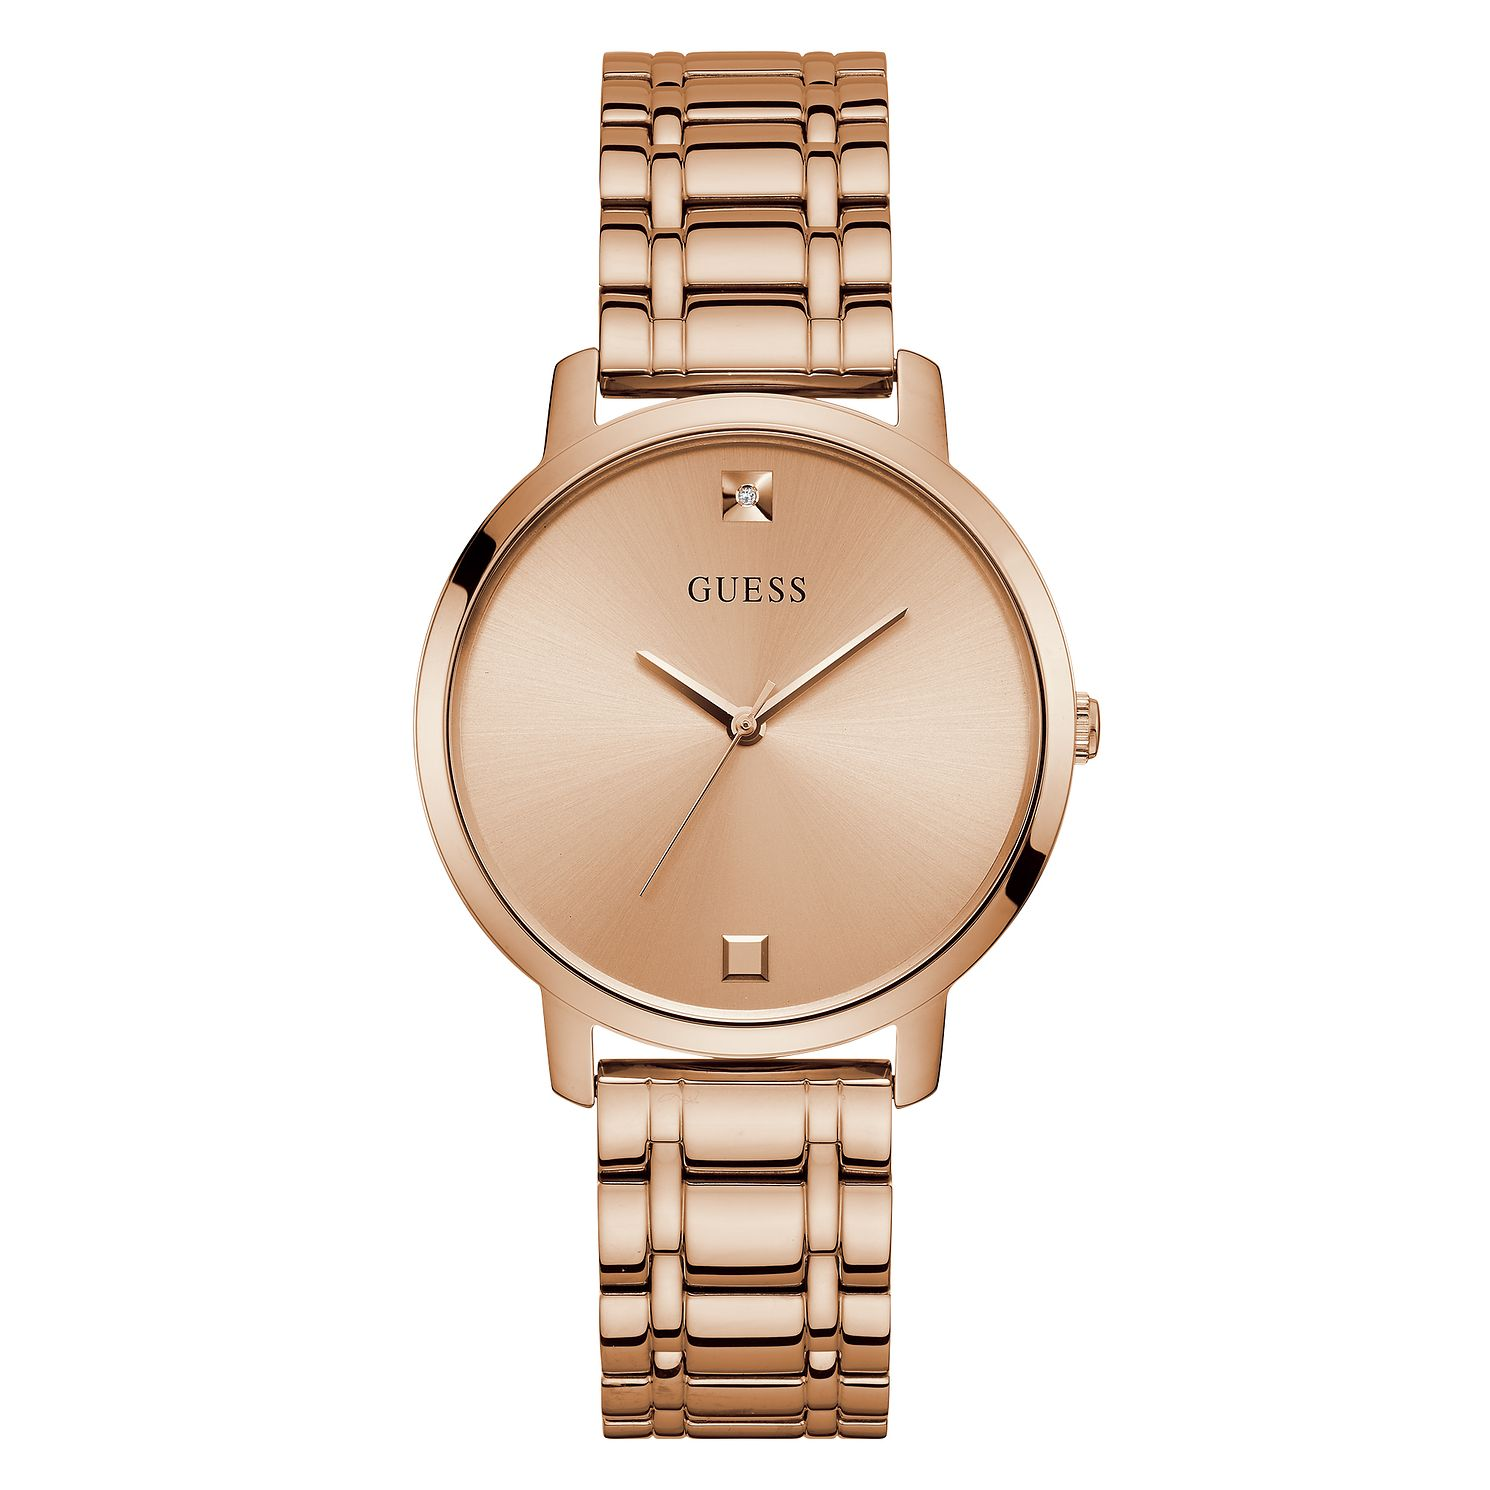 Guess Nova Crystal Ladies' Rose Gold Tone Bracelet Watch - Product number 5191114